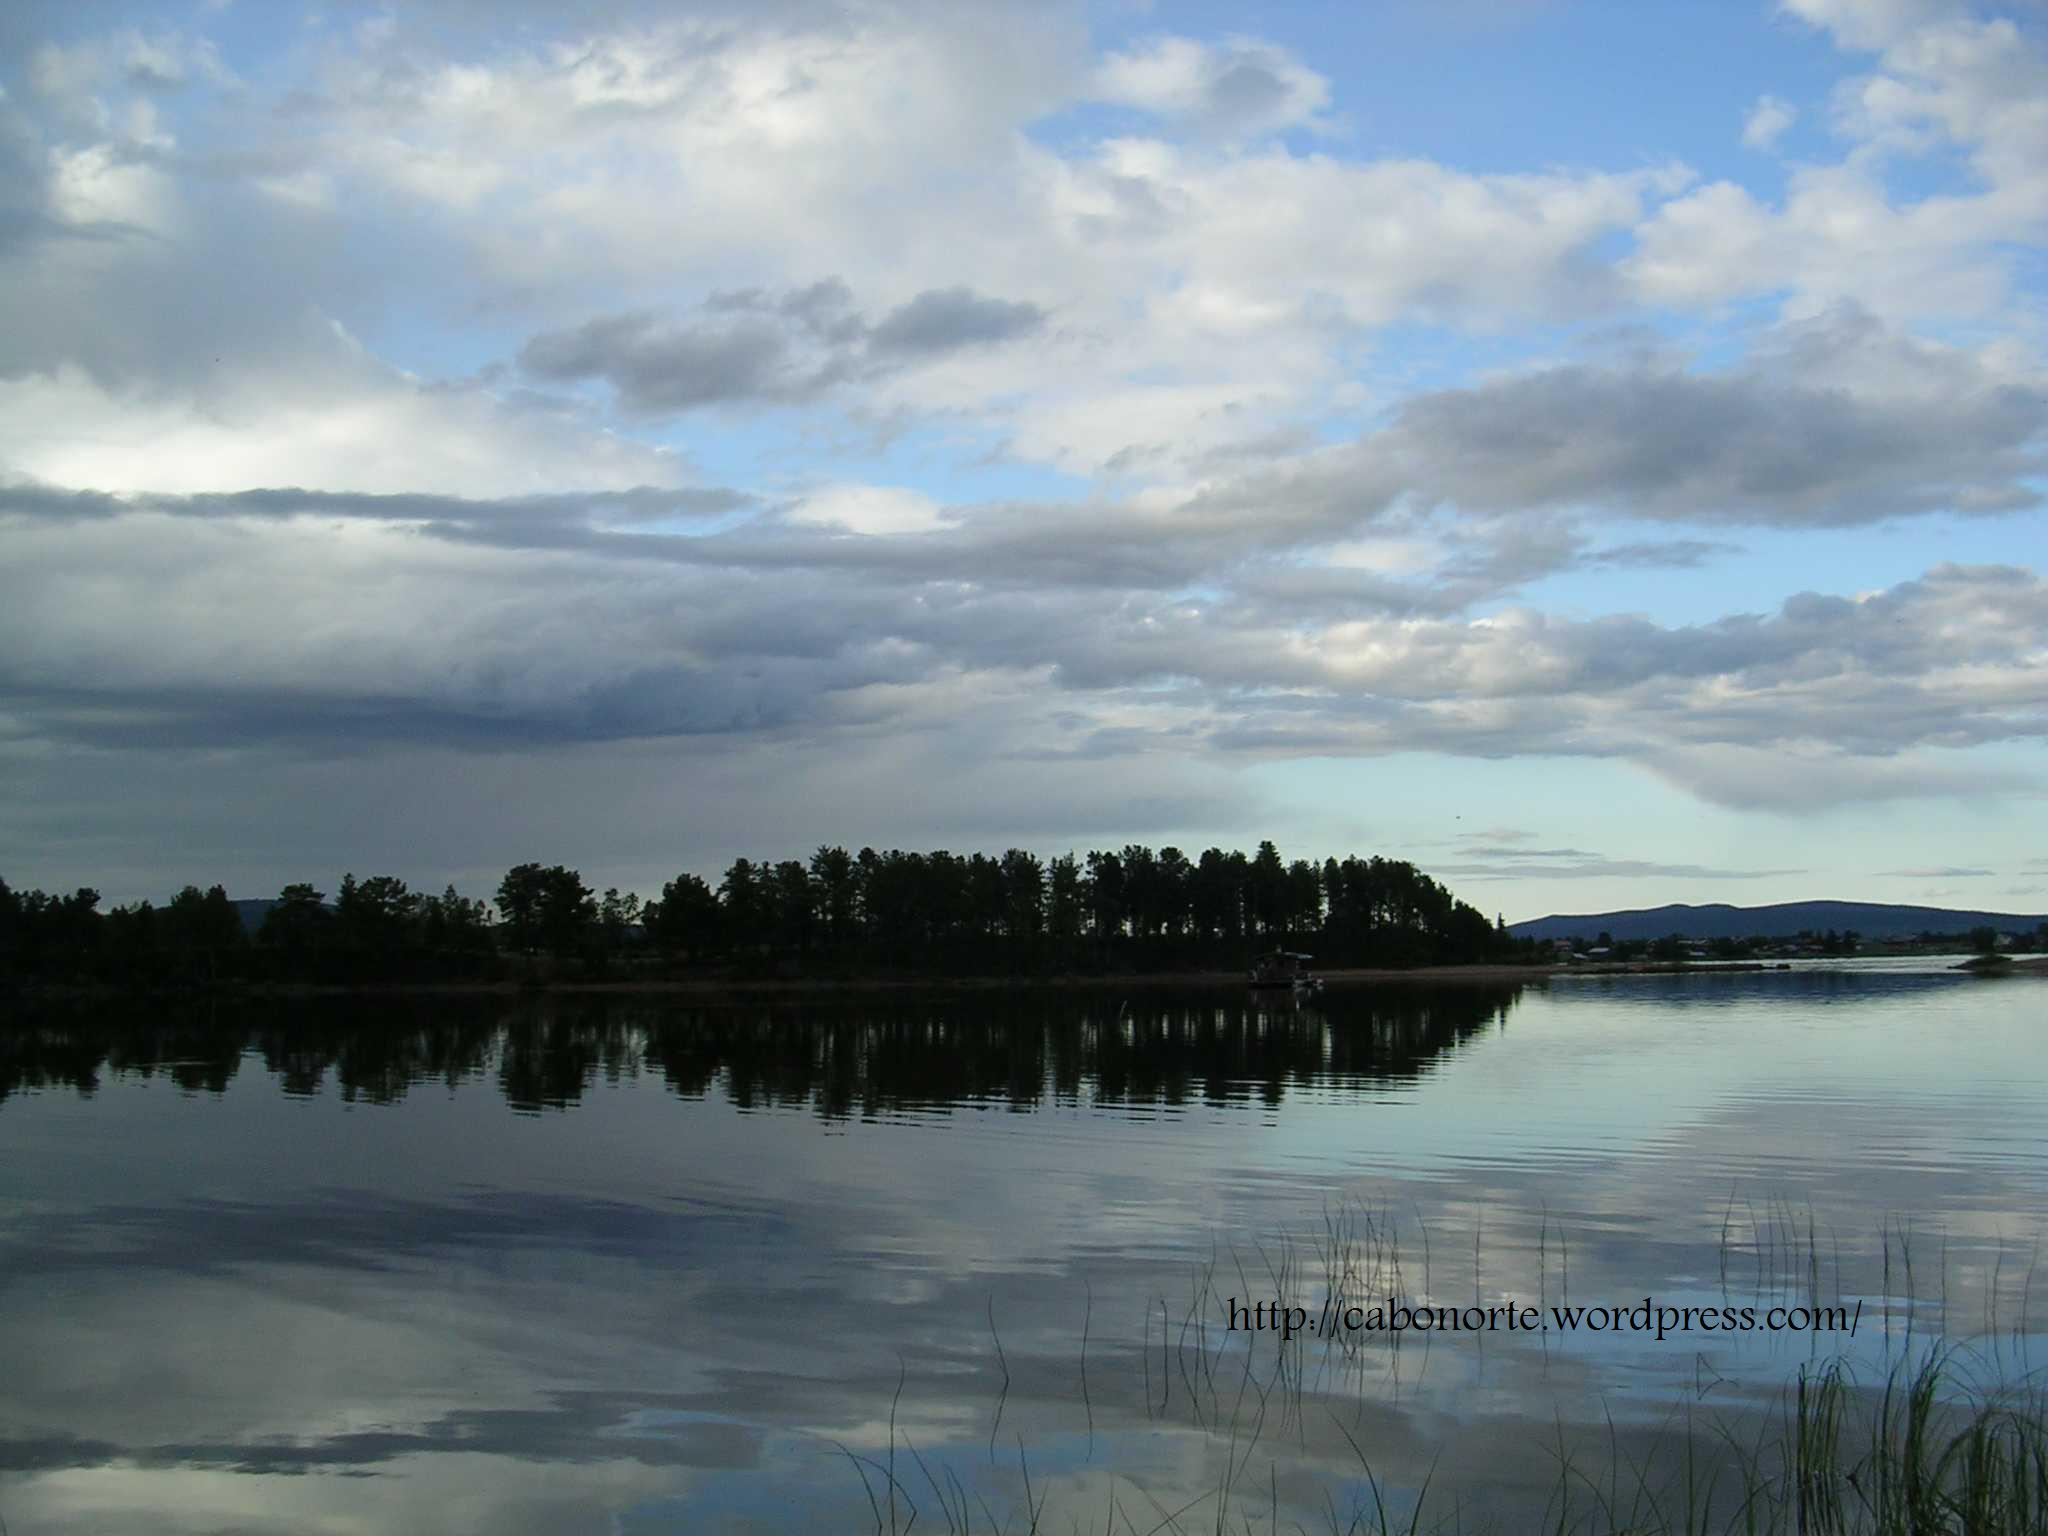 Lake in Jukkasjärvi, Sweden